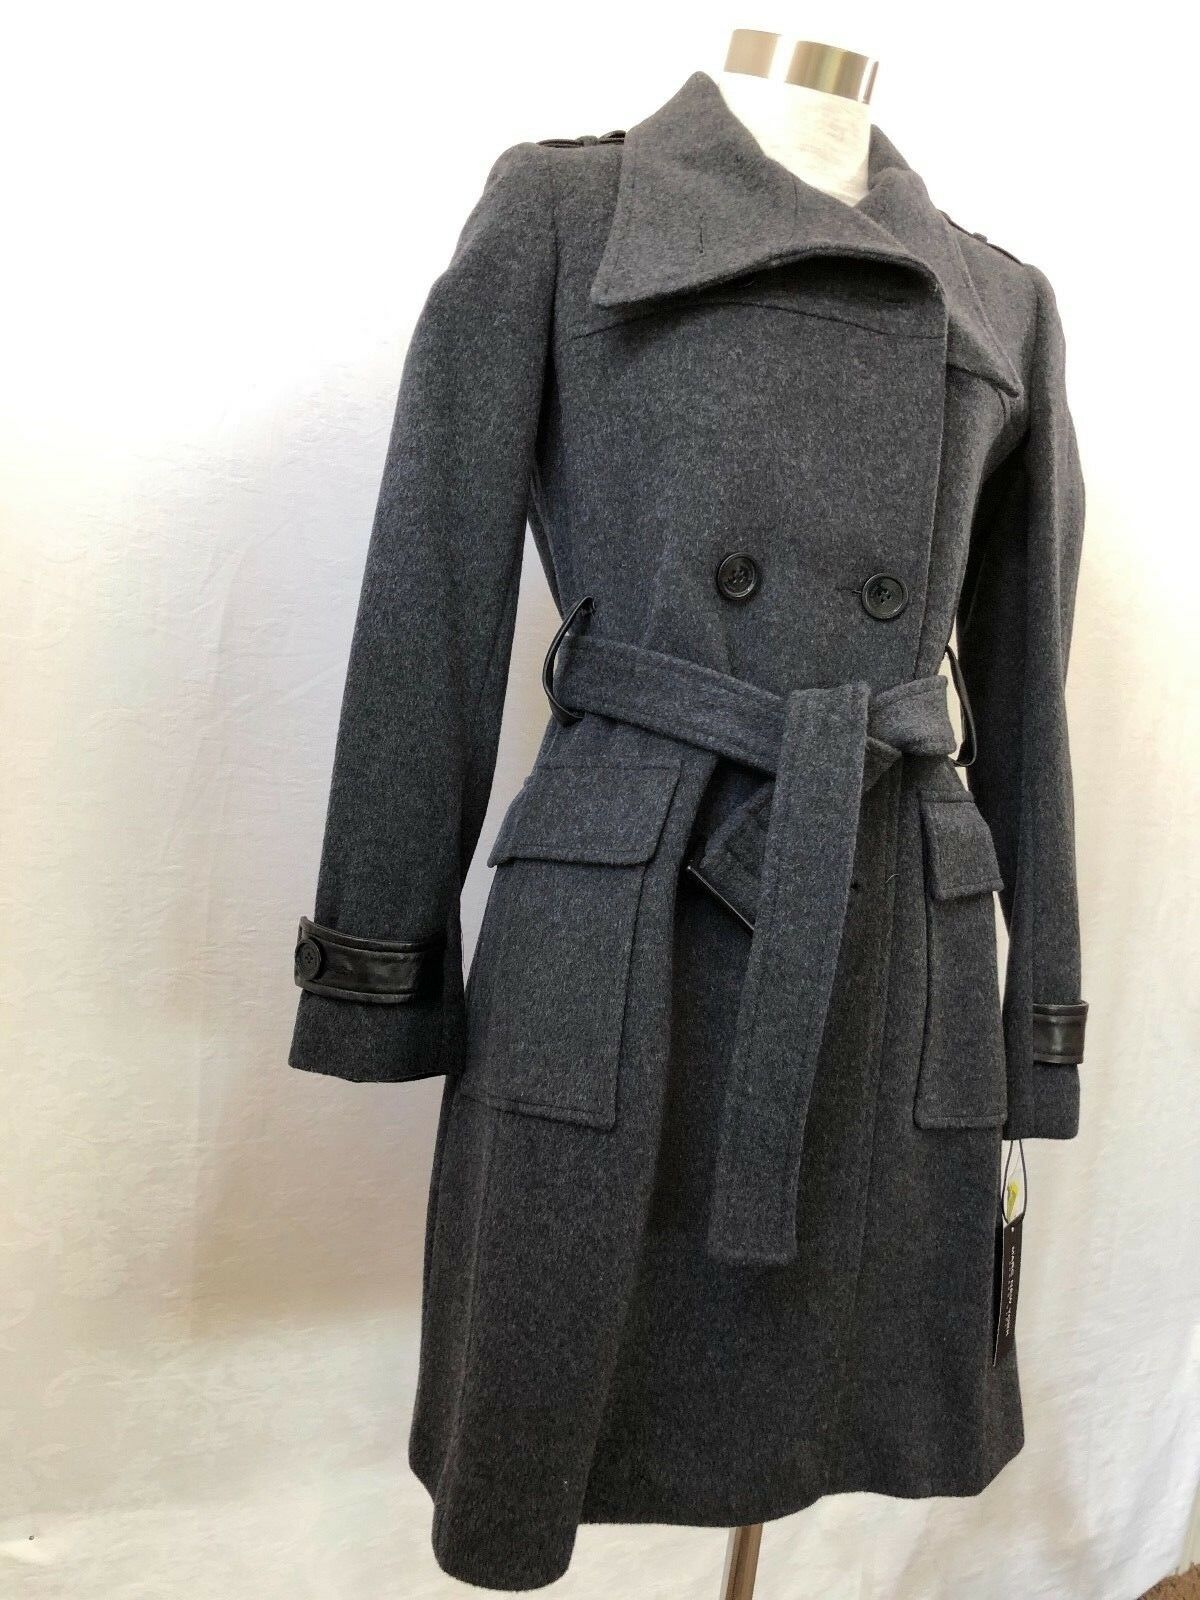 NWT Marc New York Andrew Marc GREY Cashmere Wool Blend Lined Belted Coat Size 6